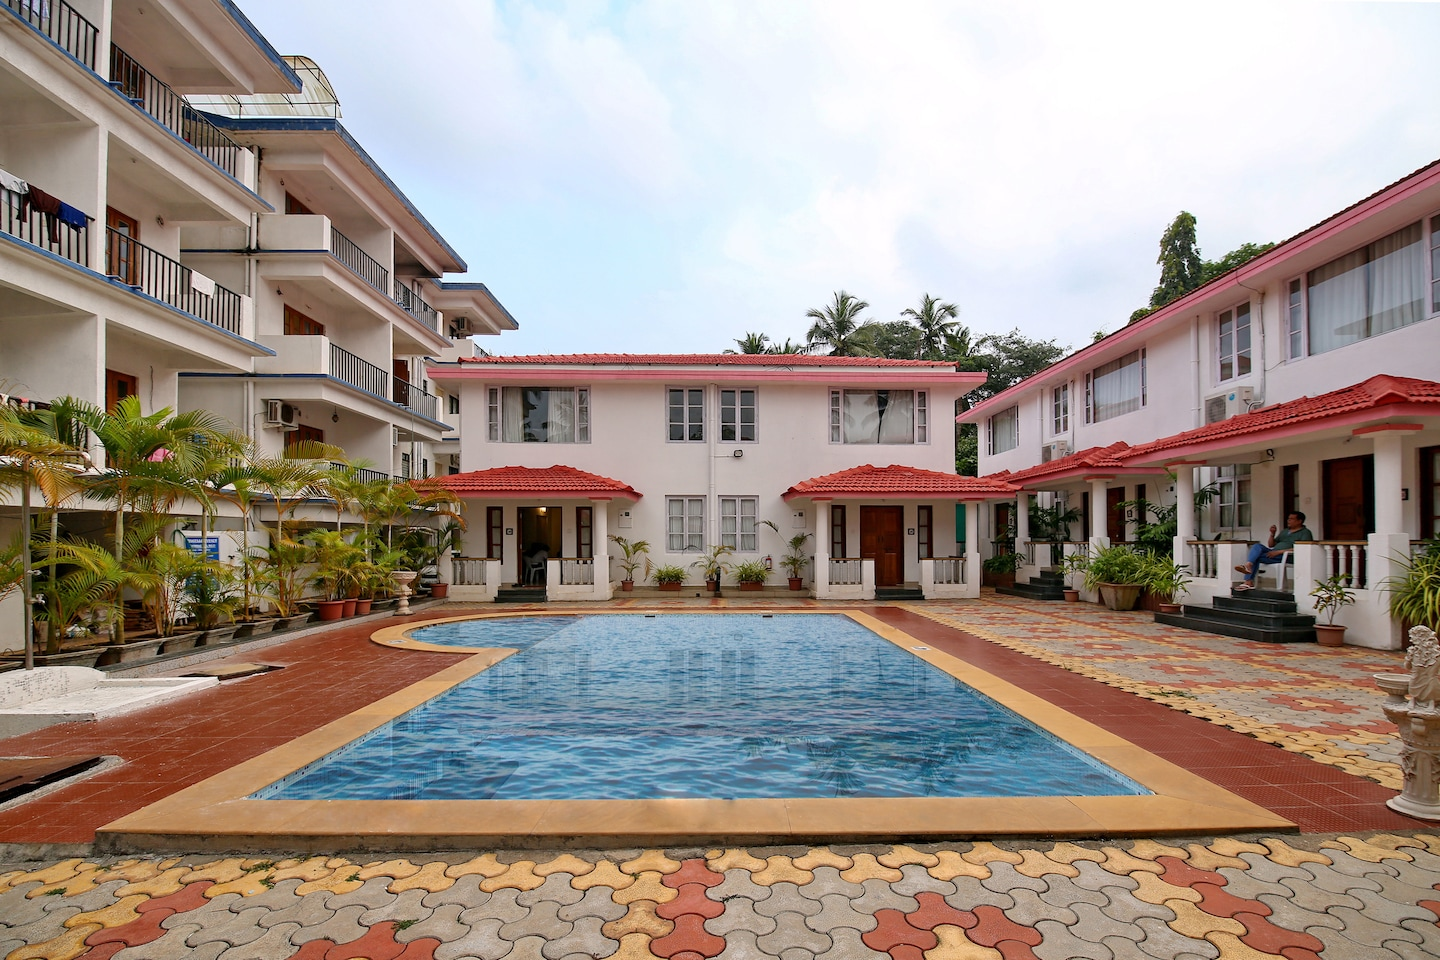 OYO 9890 Home Poolside 2BHK Vagator Beach -1